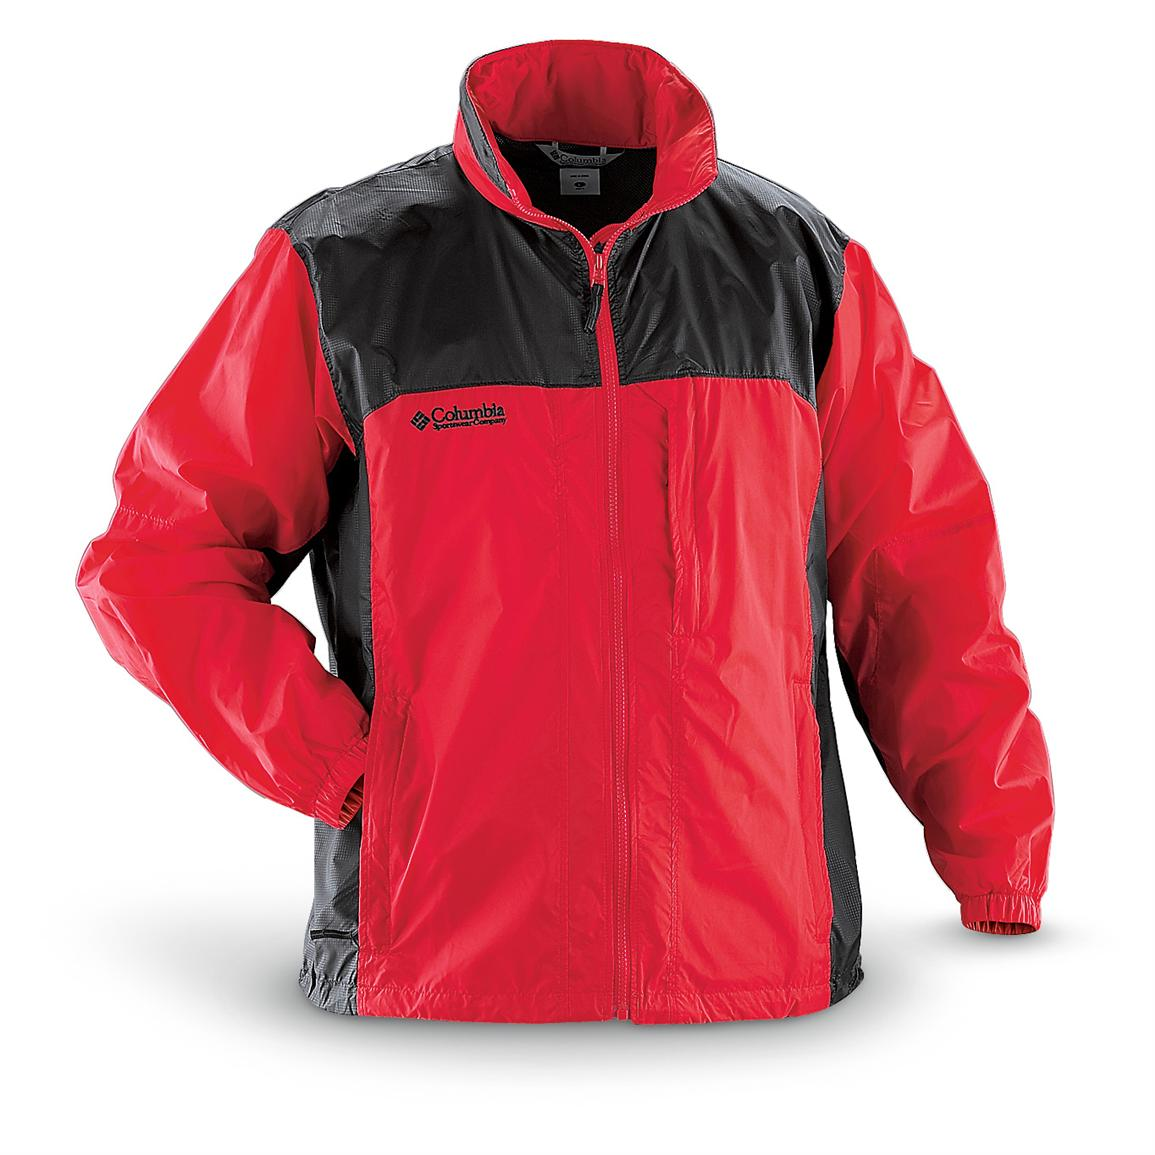 red jacket cougars personals Houston cougars activewear is available now at fansedgecom ranging from polos, t-shirts, and jackets to shorts, leggings, and jackets, get your houston cougars activewear at fansedgecom and cheer on the cougars in comfortable and athletic fashion.